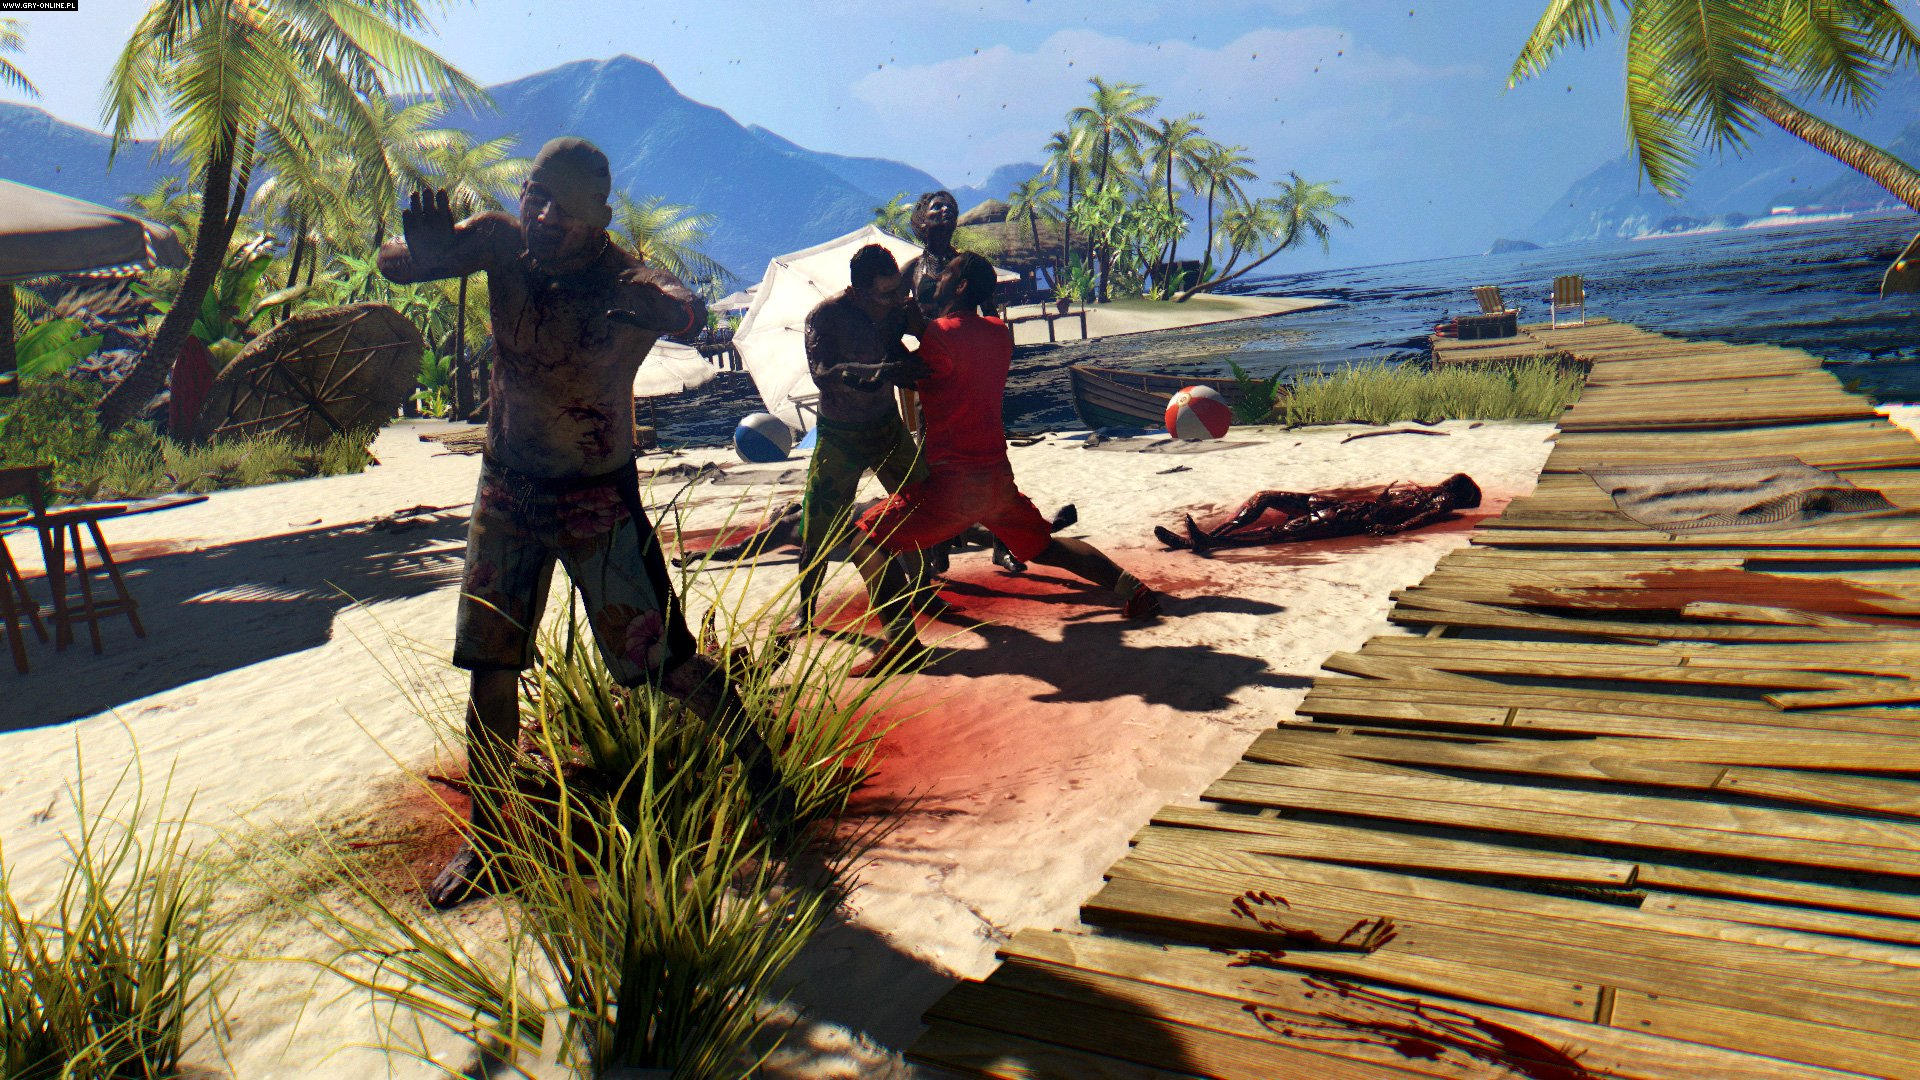 Dead Island: Definitive Collection PC, PS4, XONE Games Image 14/16, Techland, Deep Silver / Koch Media